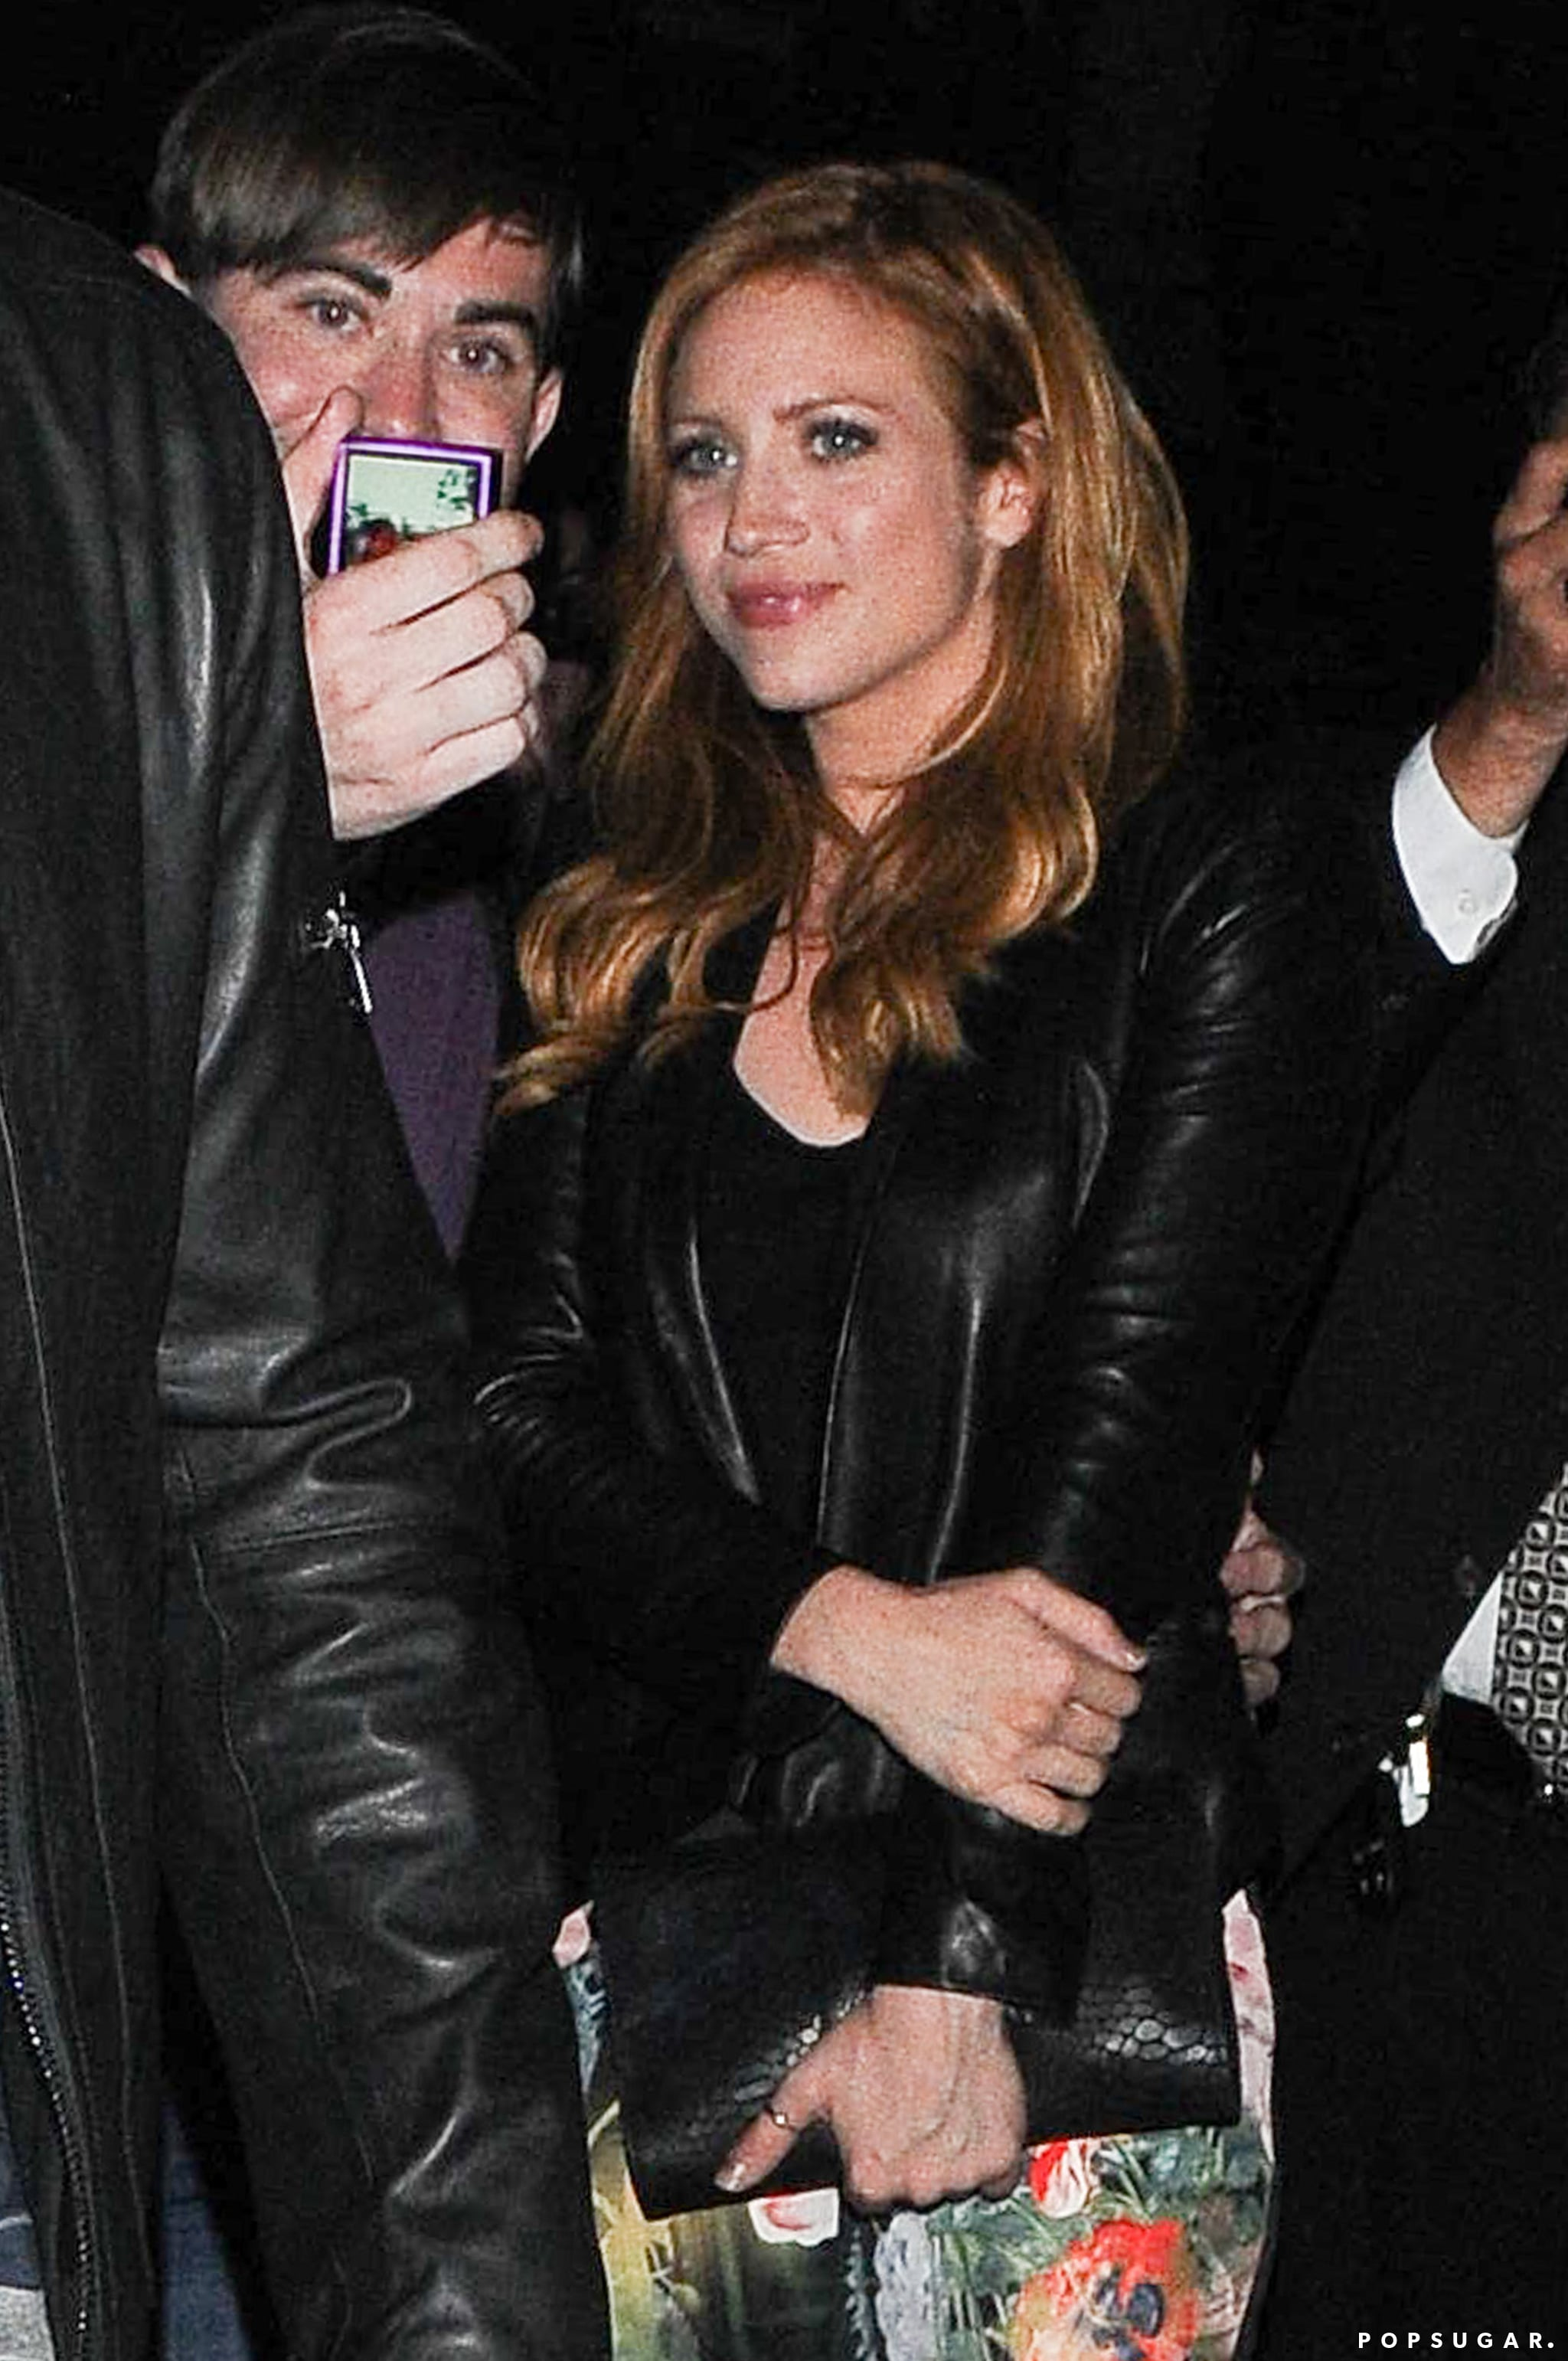 Brittany Snow took a photo with a fan.